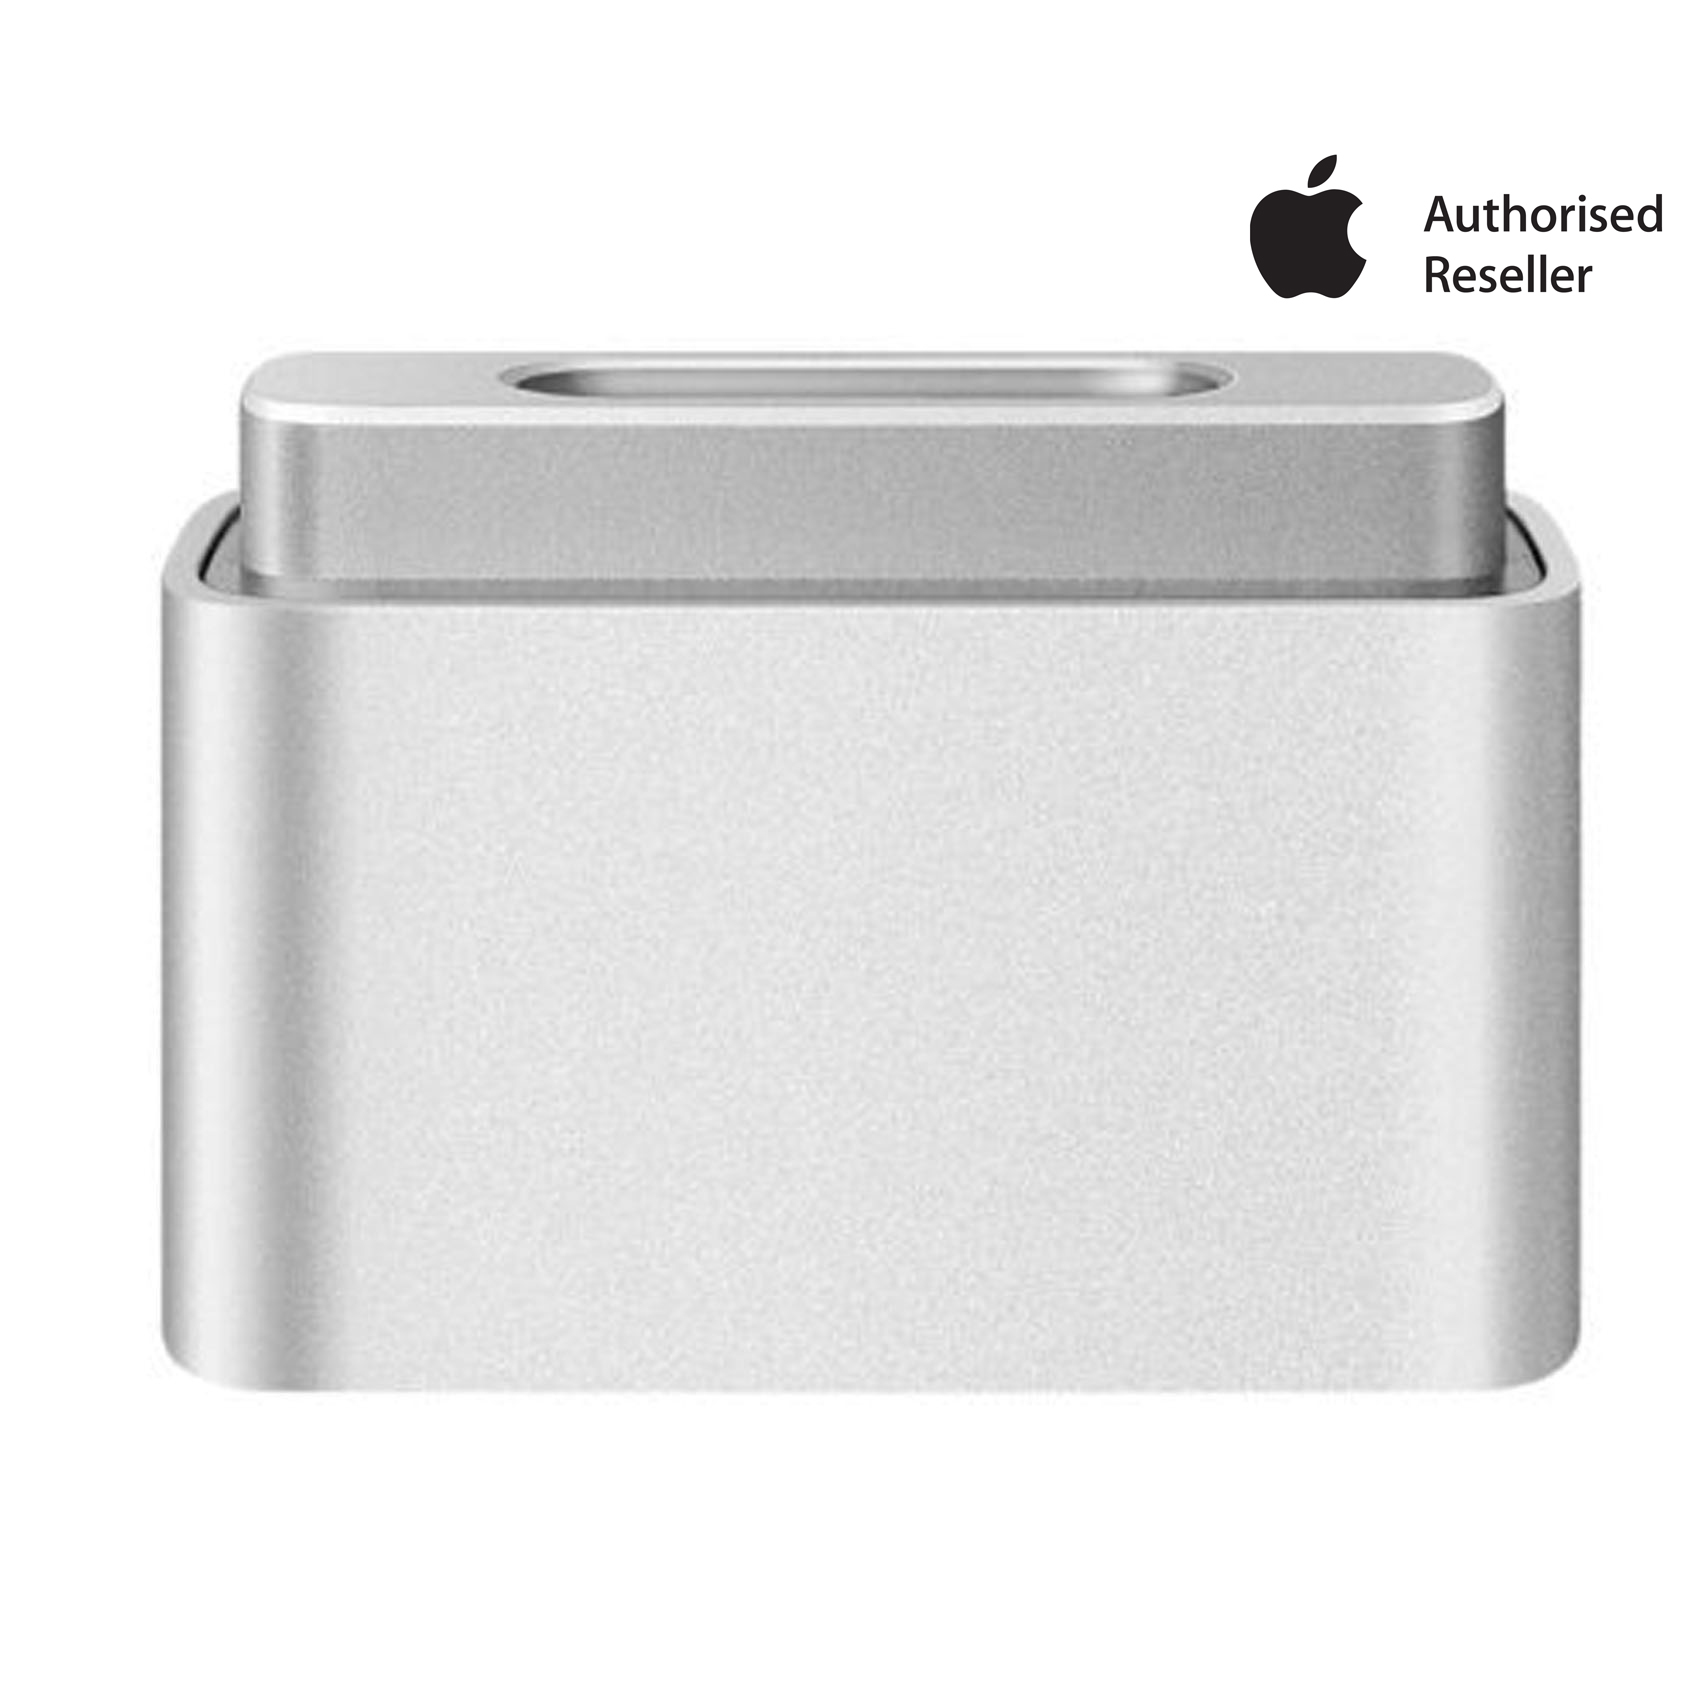 APPLE ADAPT MAGSAFE TO MAG 2 CNVT